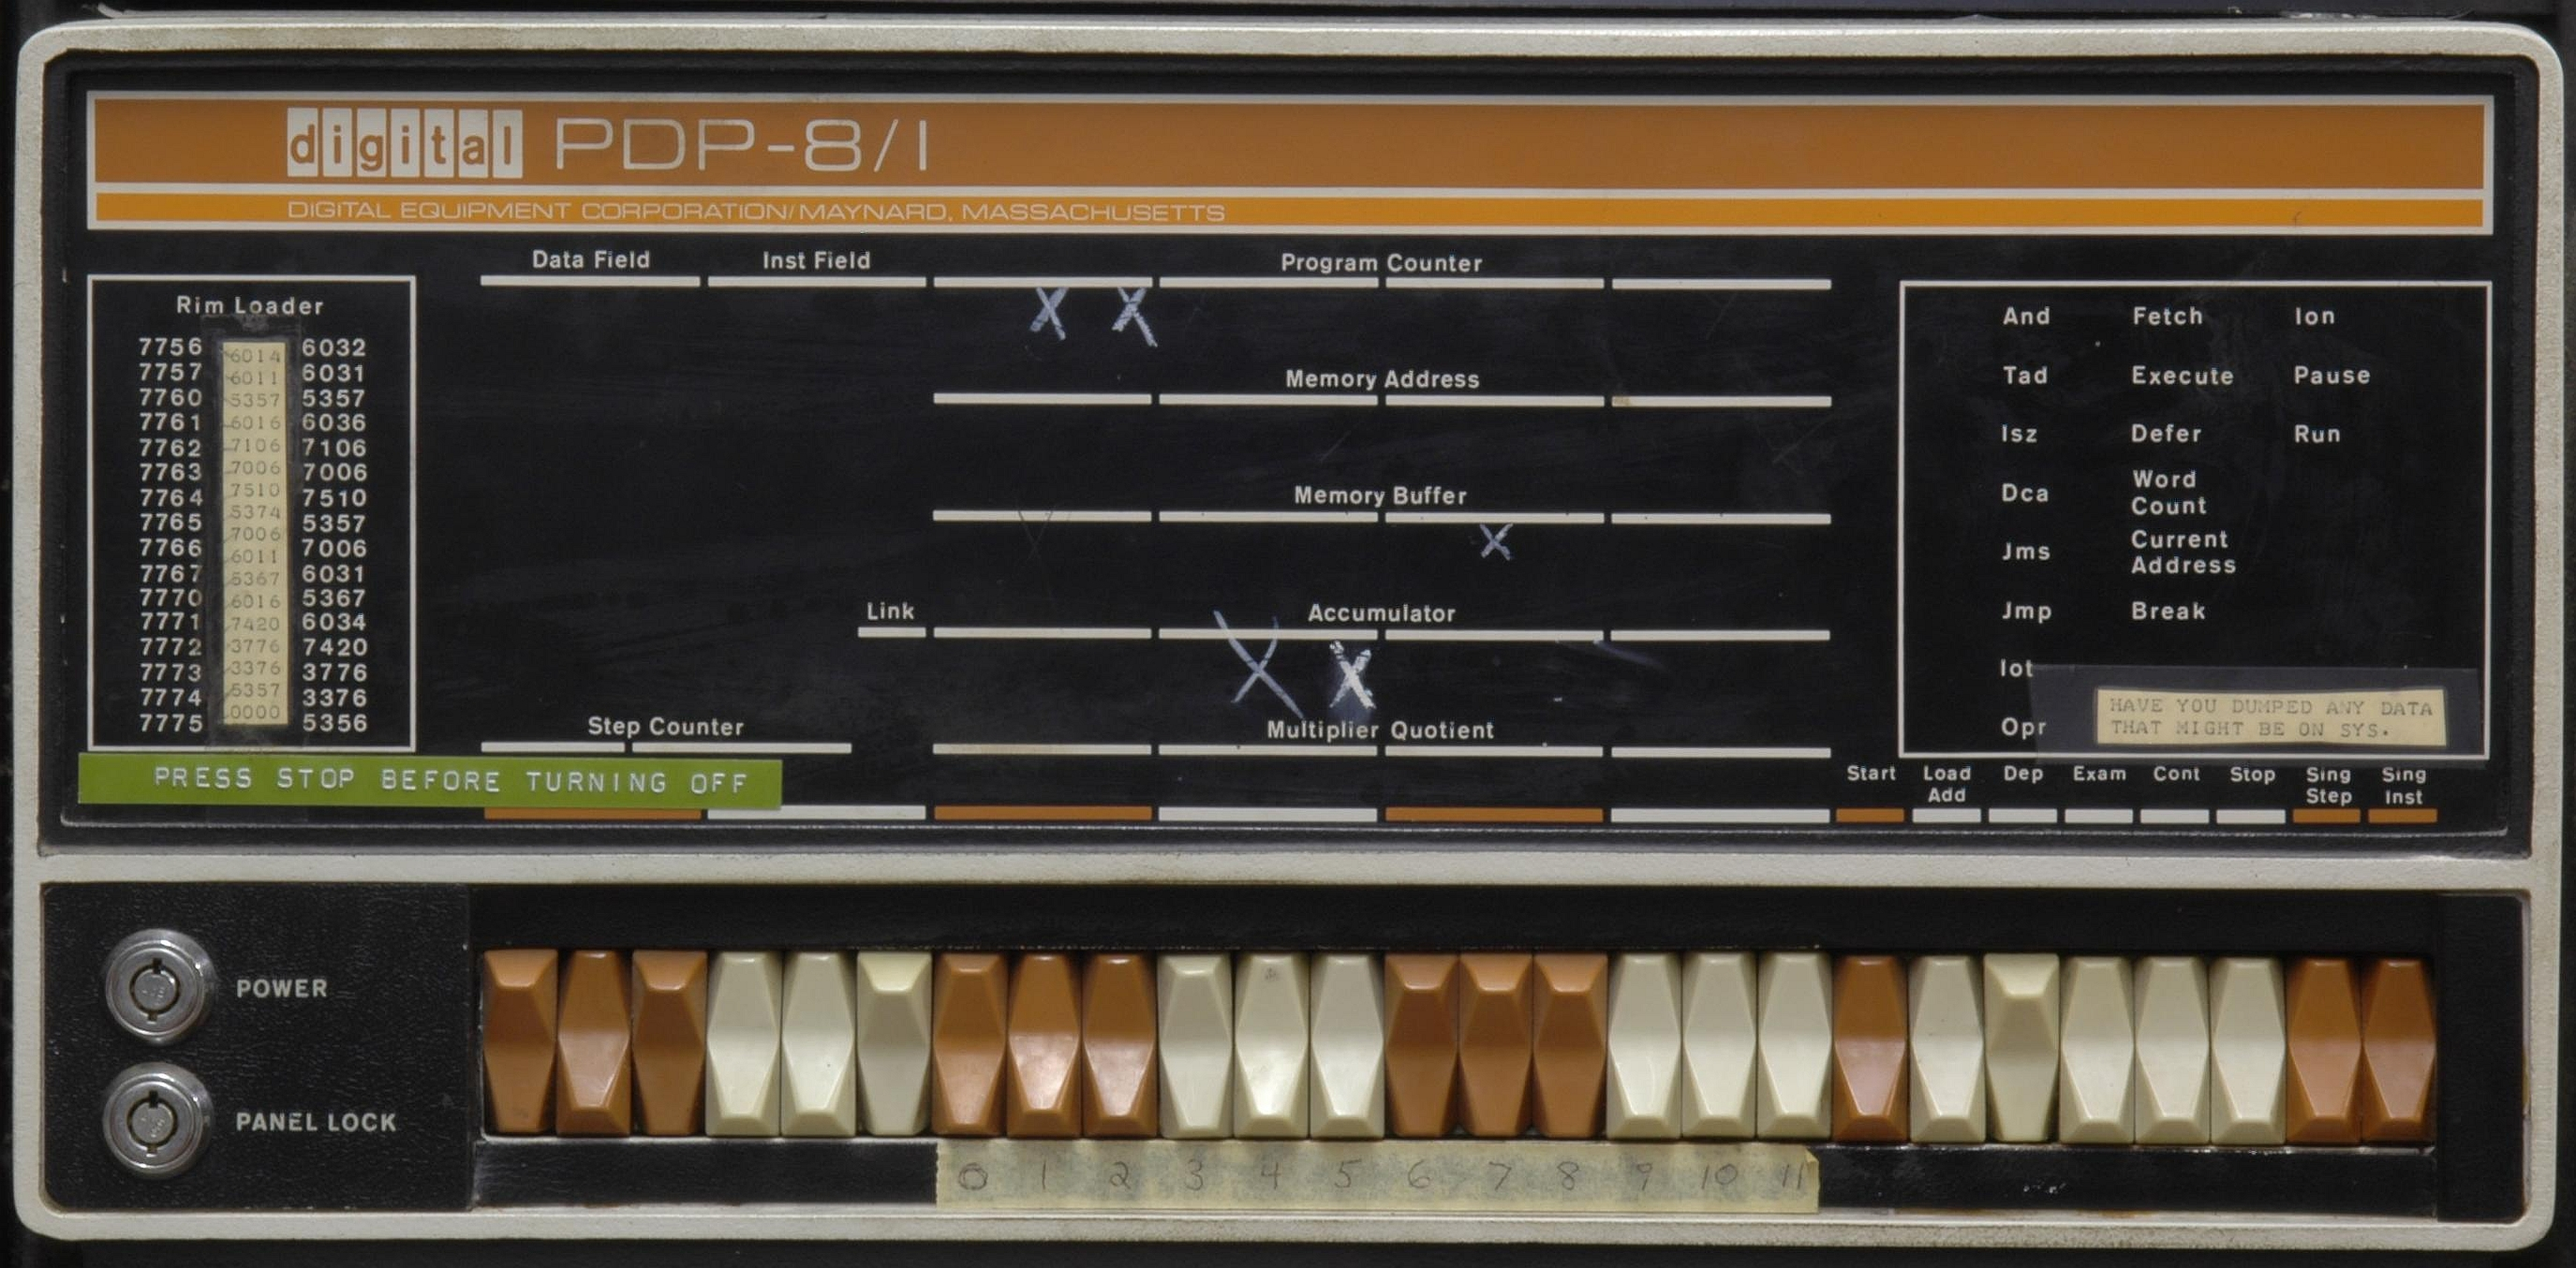 PDP-8 1 Backgrounds on Wallpapers Vista